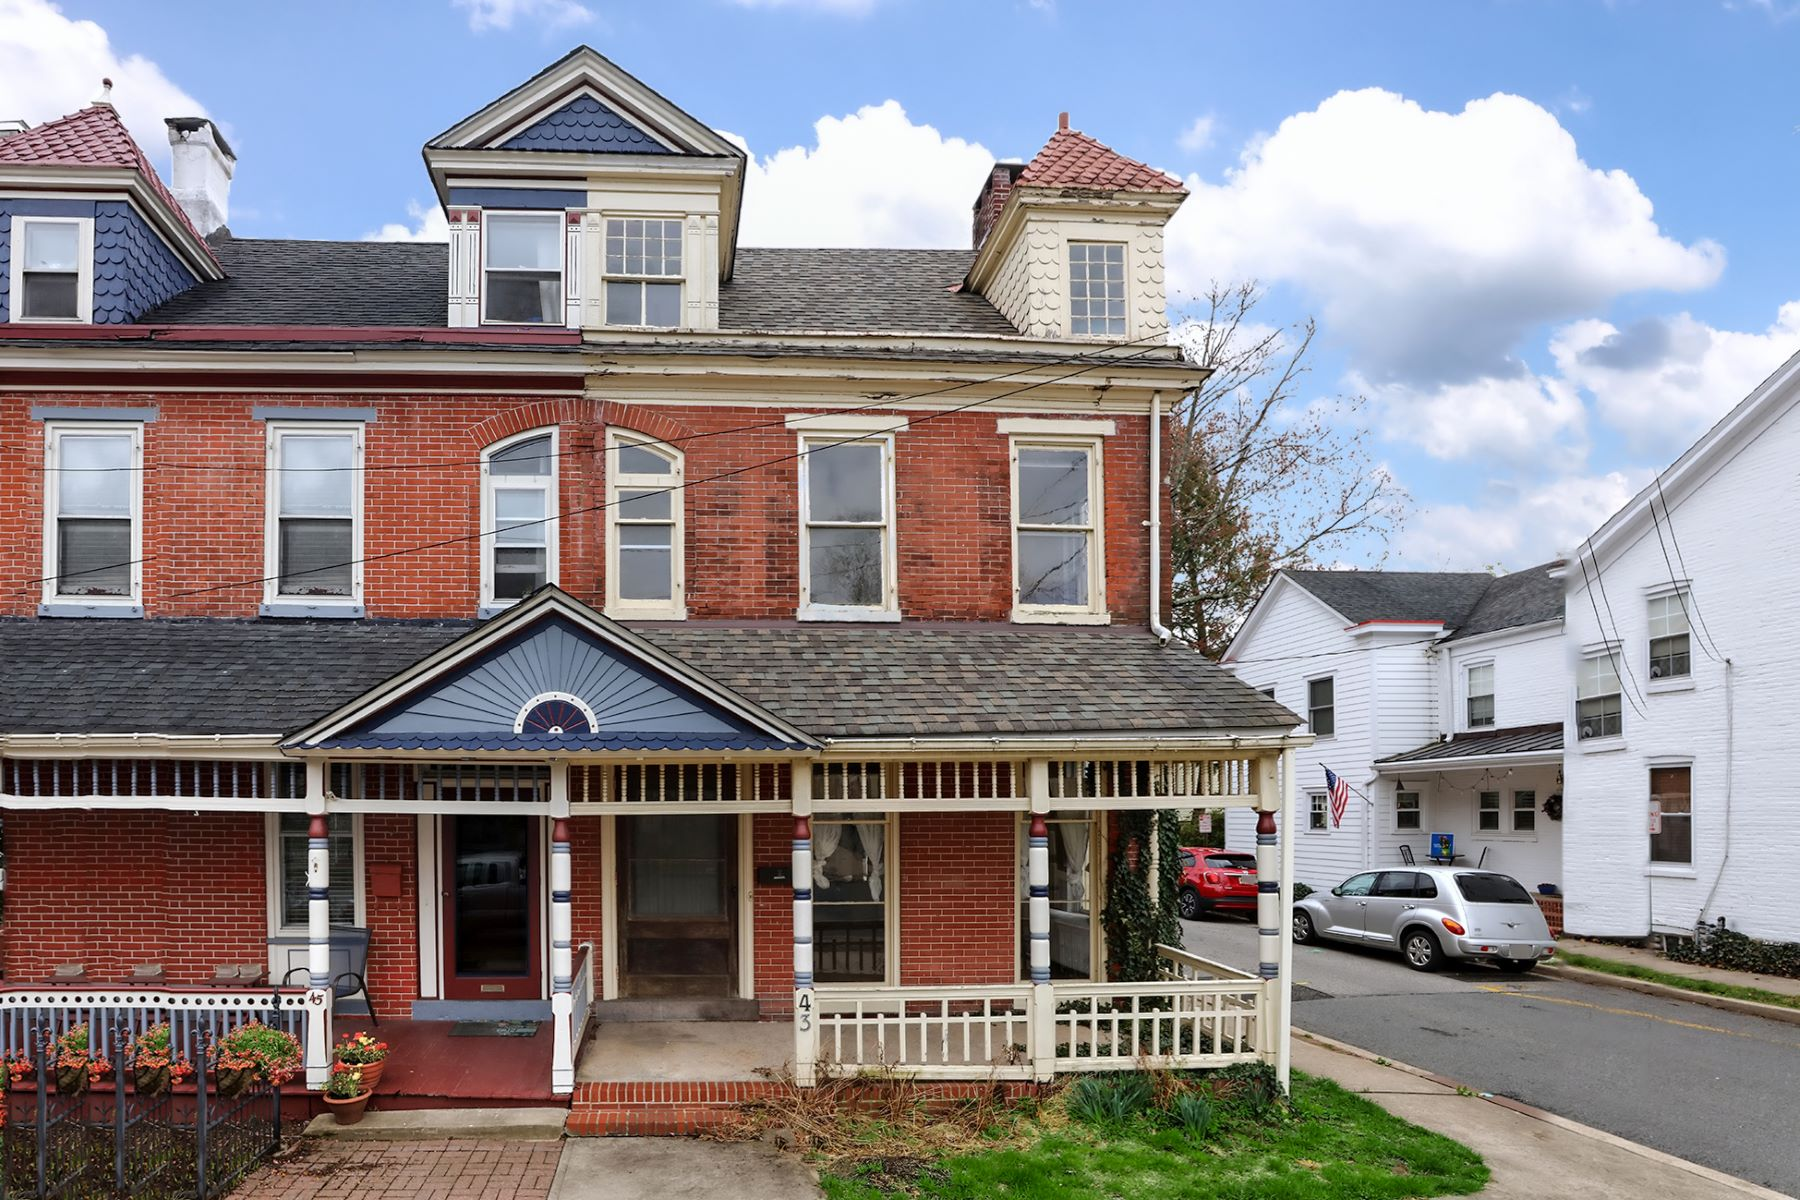 townhouses for Sale at Don't Wait On This Rare Lambertville Opportunity! 43 Delaware Avenue, Lambertville, New Jersey 08530 United States